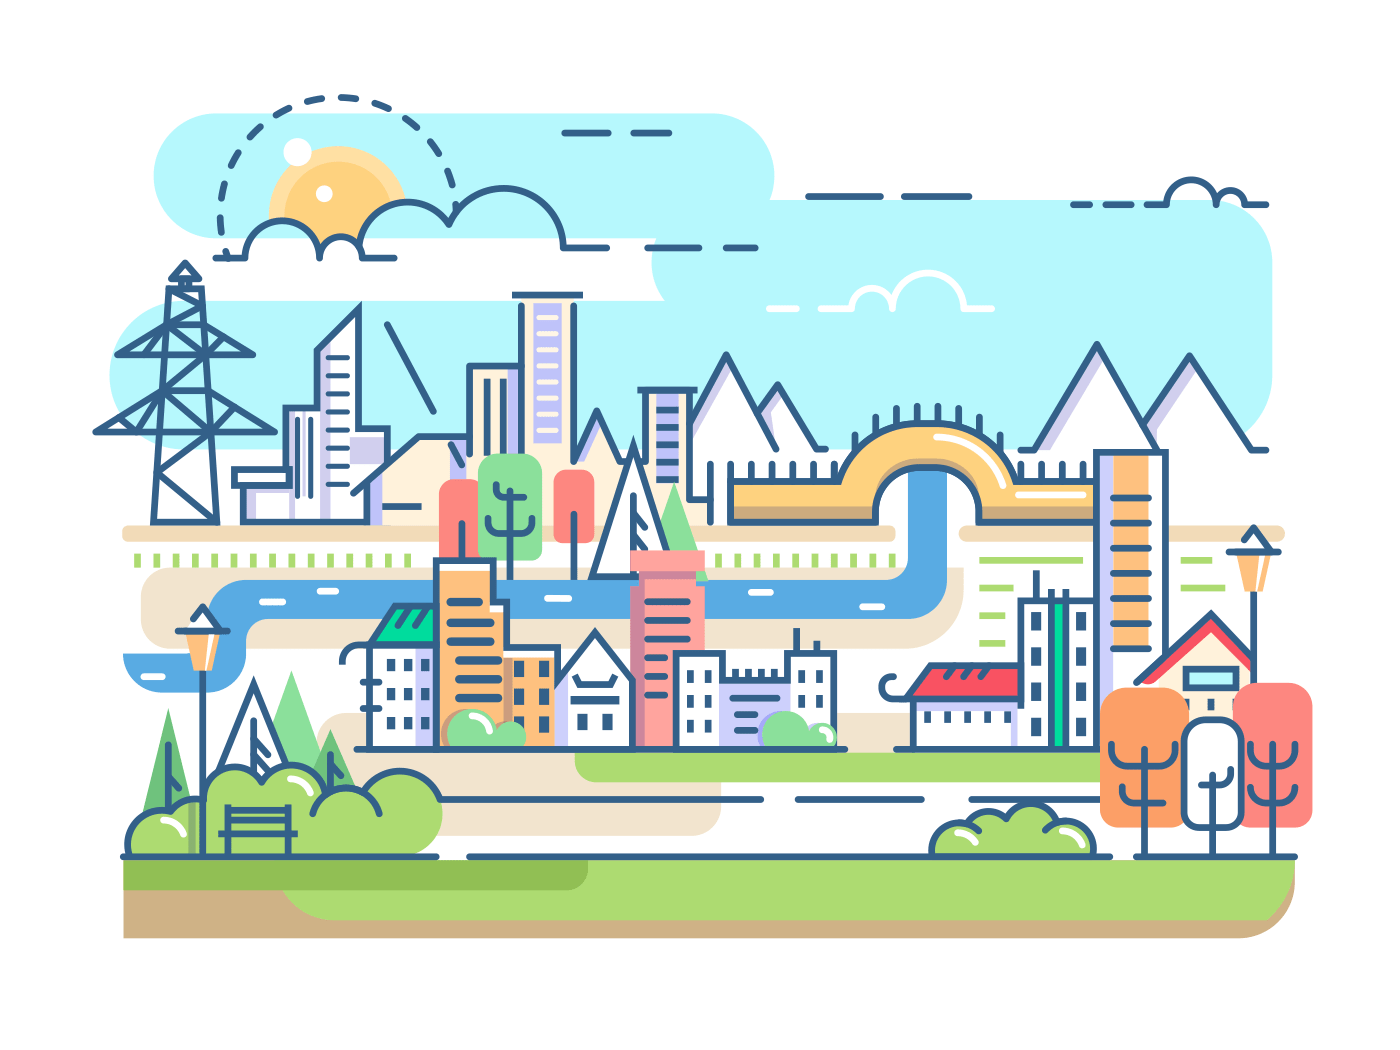 City with river and dwellings vector illustration